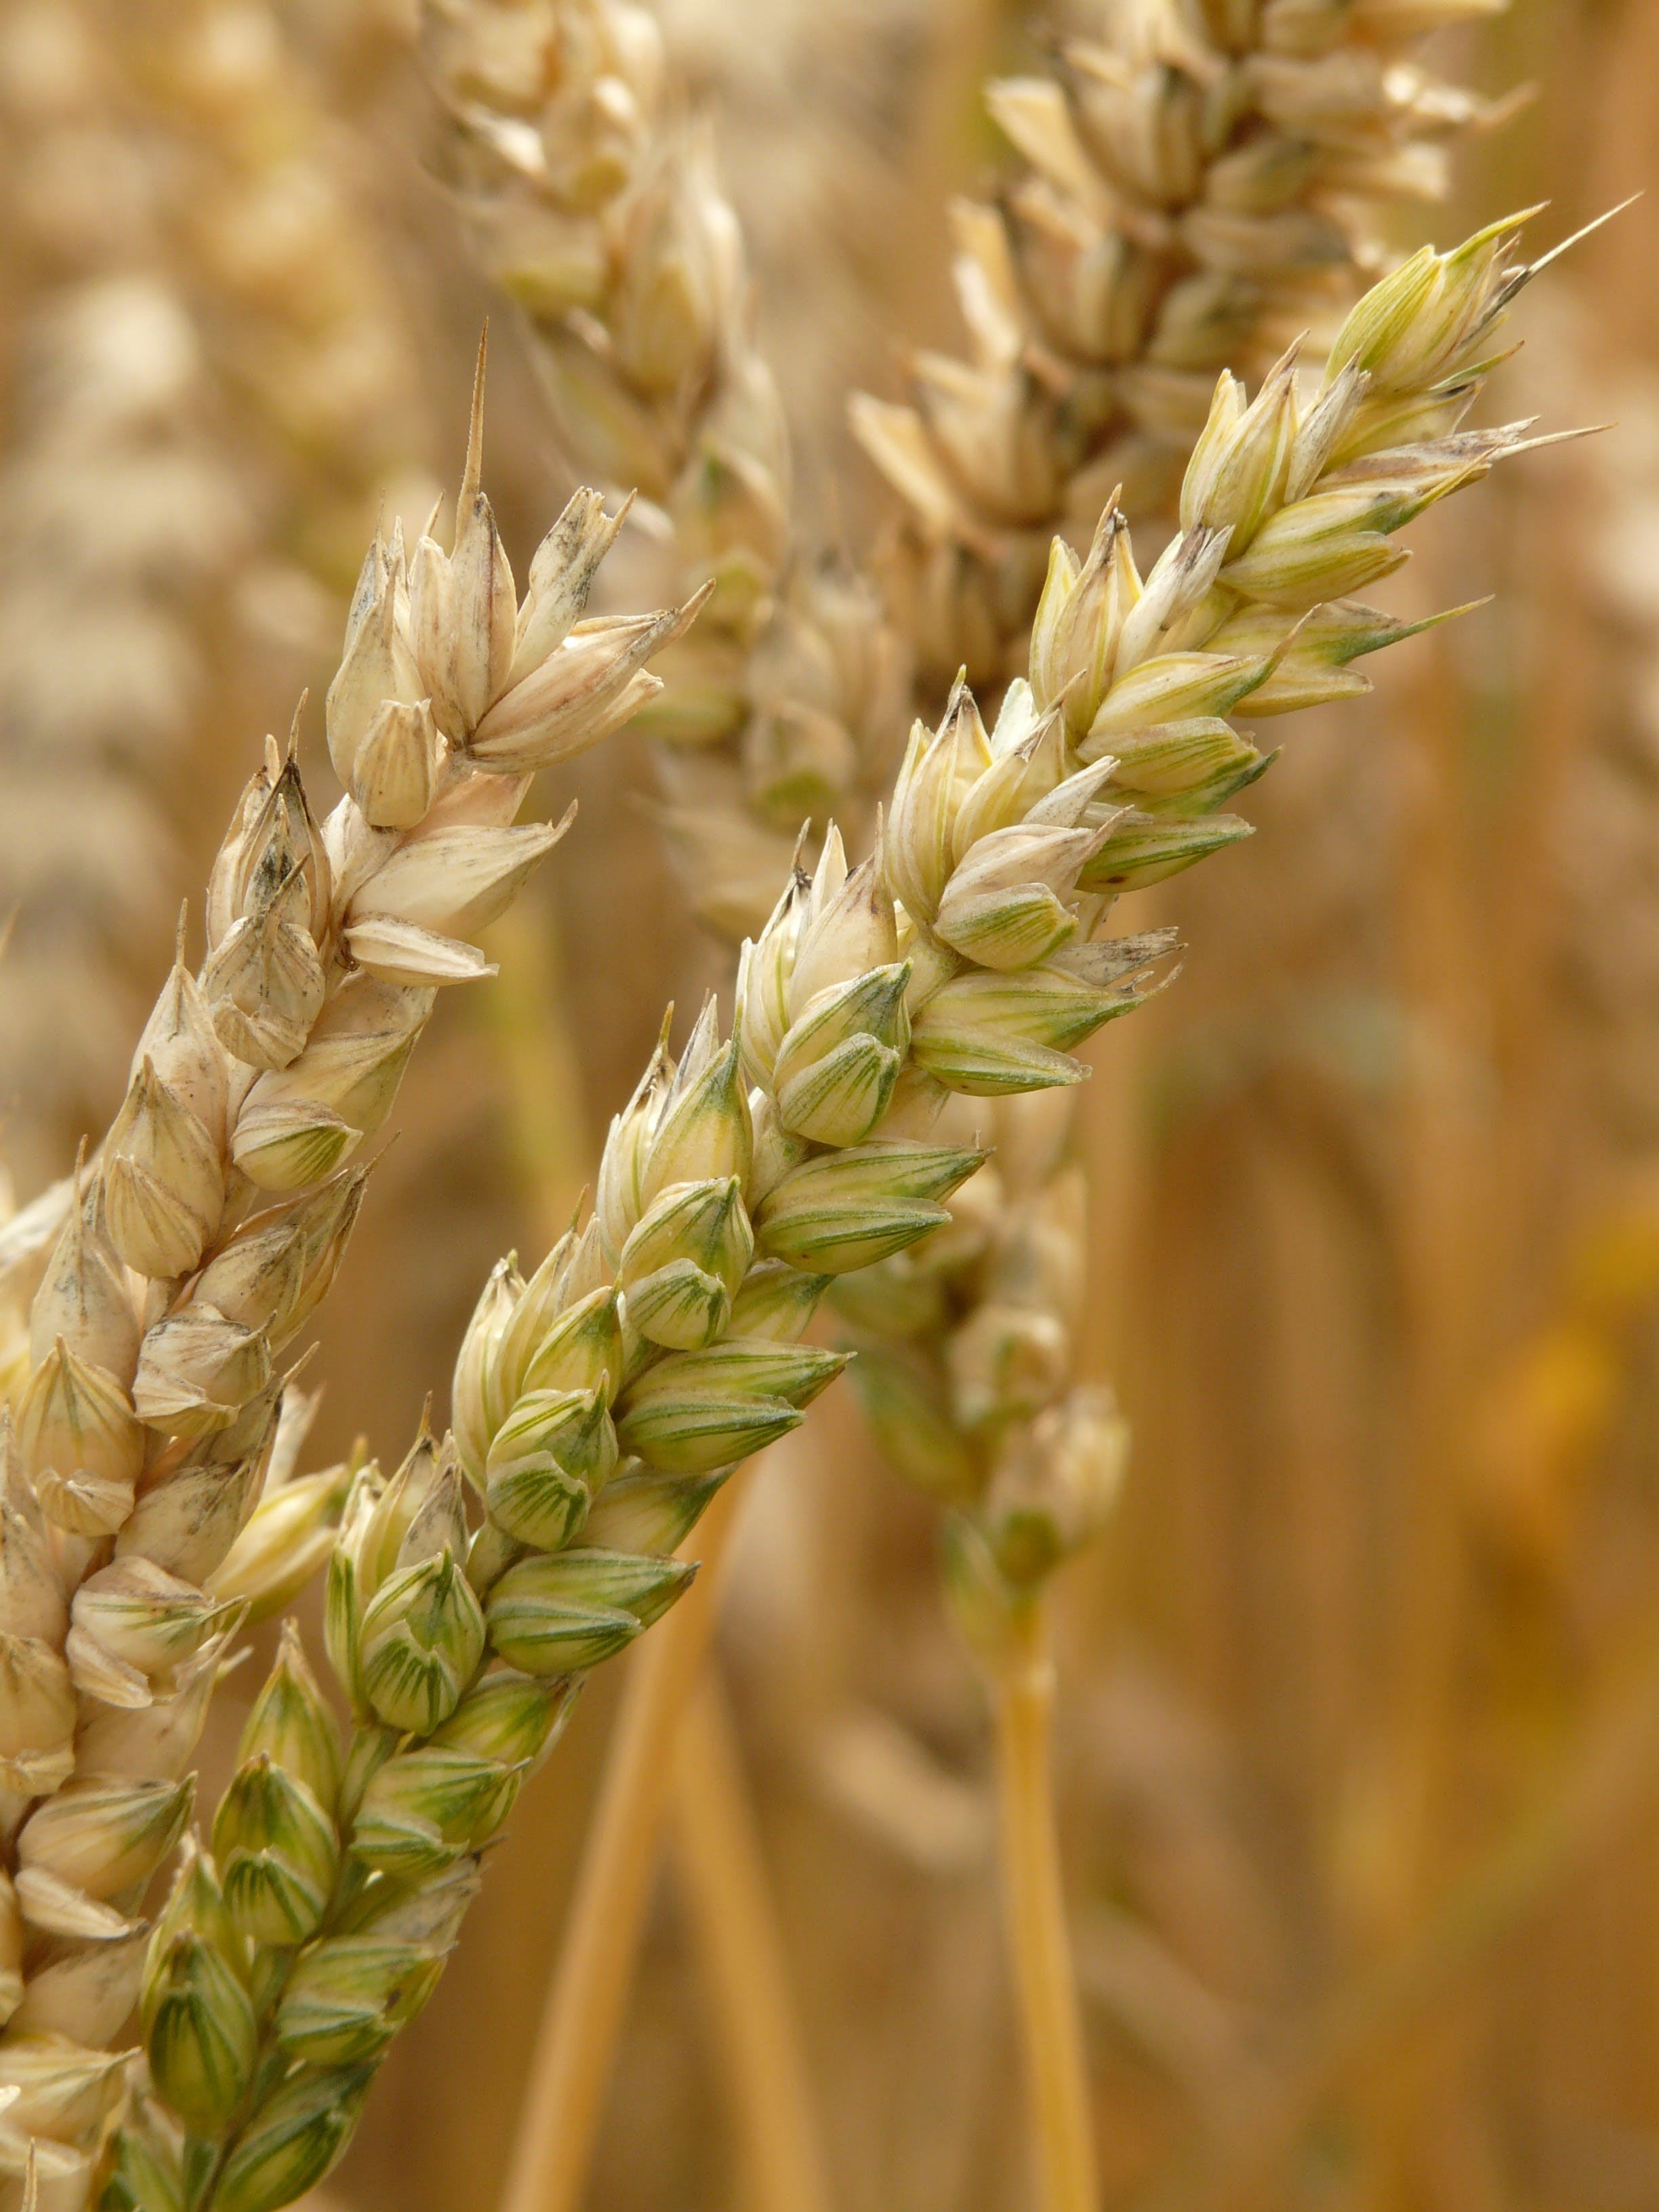 Free stock photo of agriculture, plant, blur, wheat